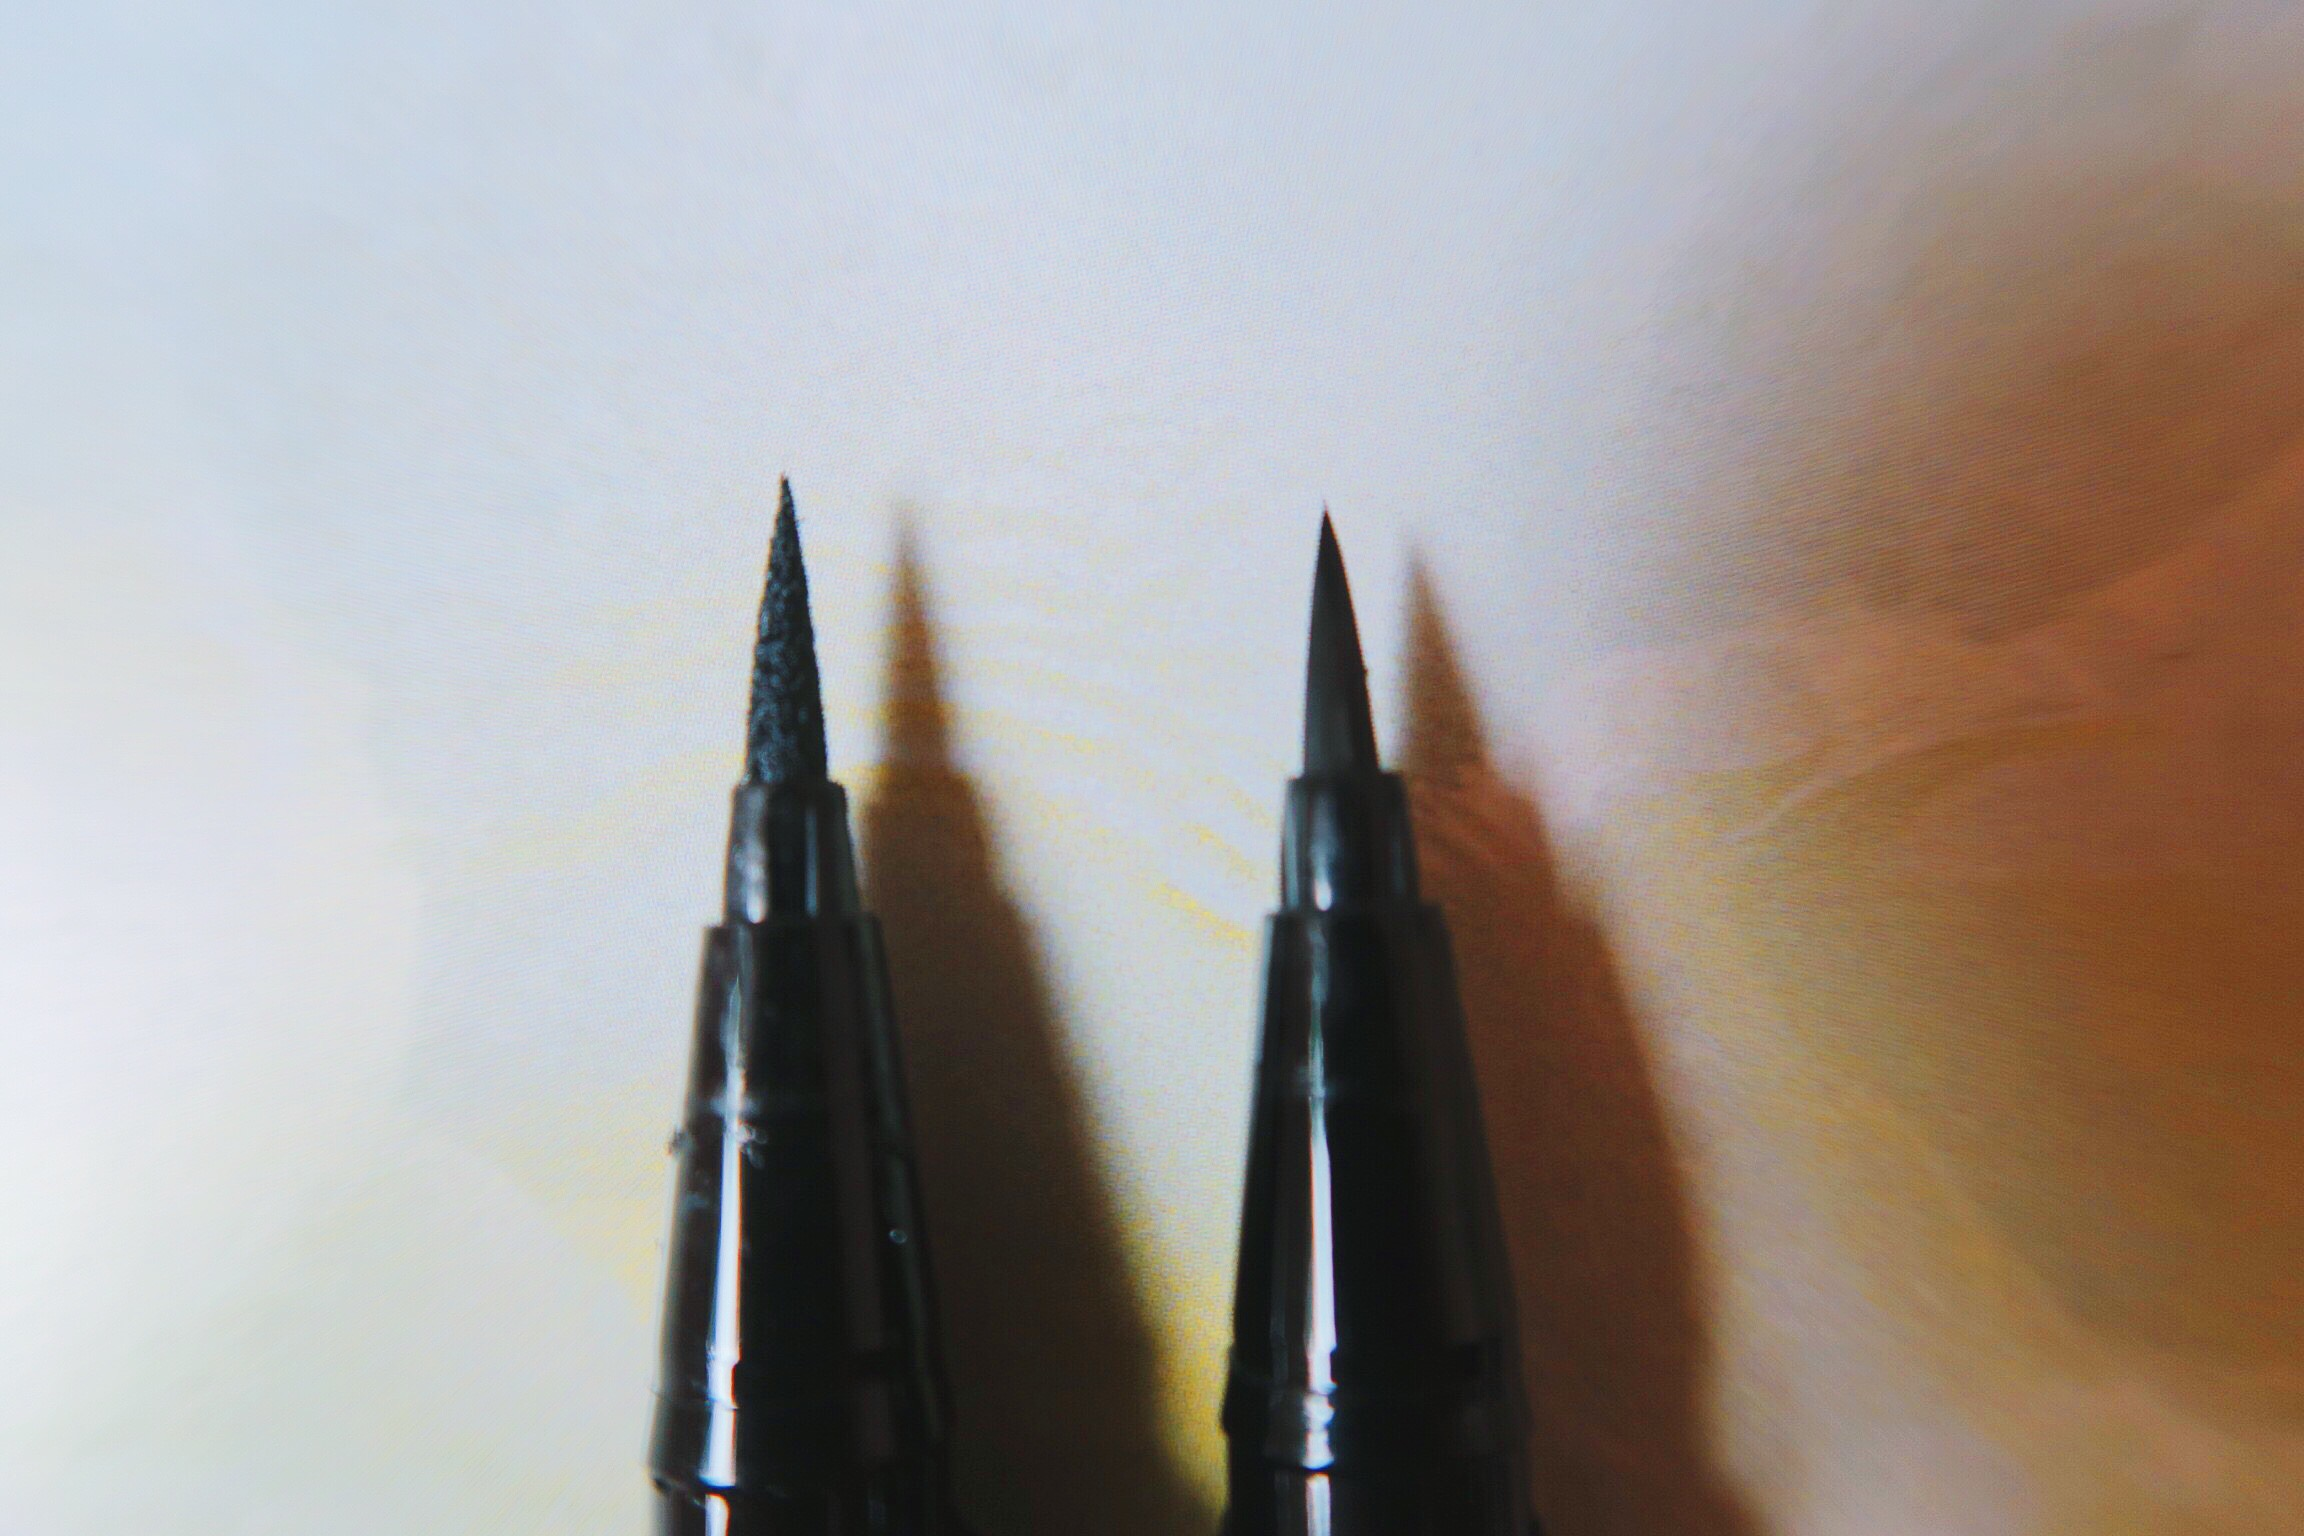 From left to right: Stila Stay All Day Liquid Eyeliner and Kat Von D Tattoo liner